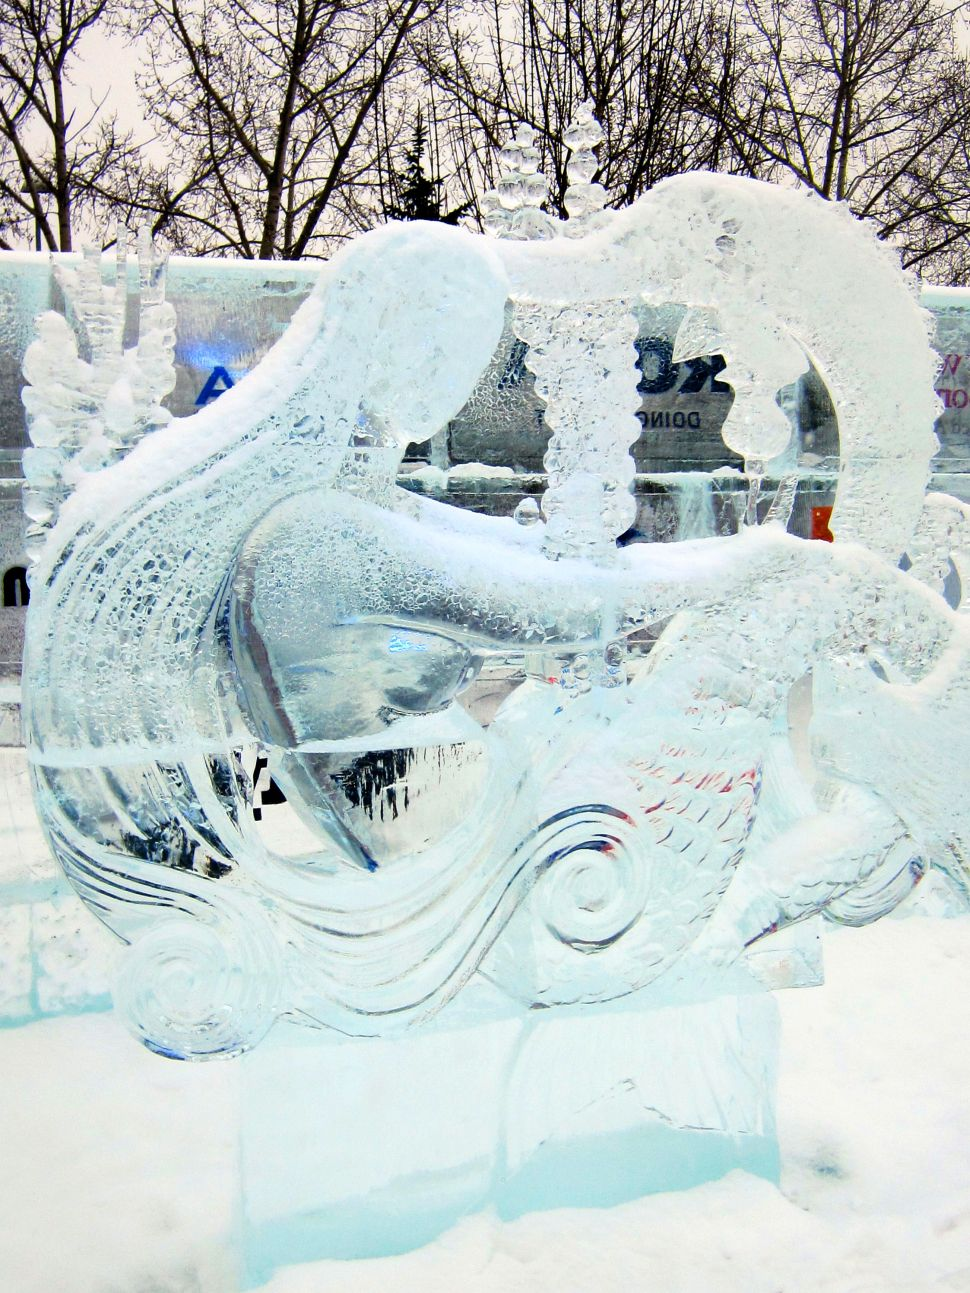 Ice on Whyte sculpture